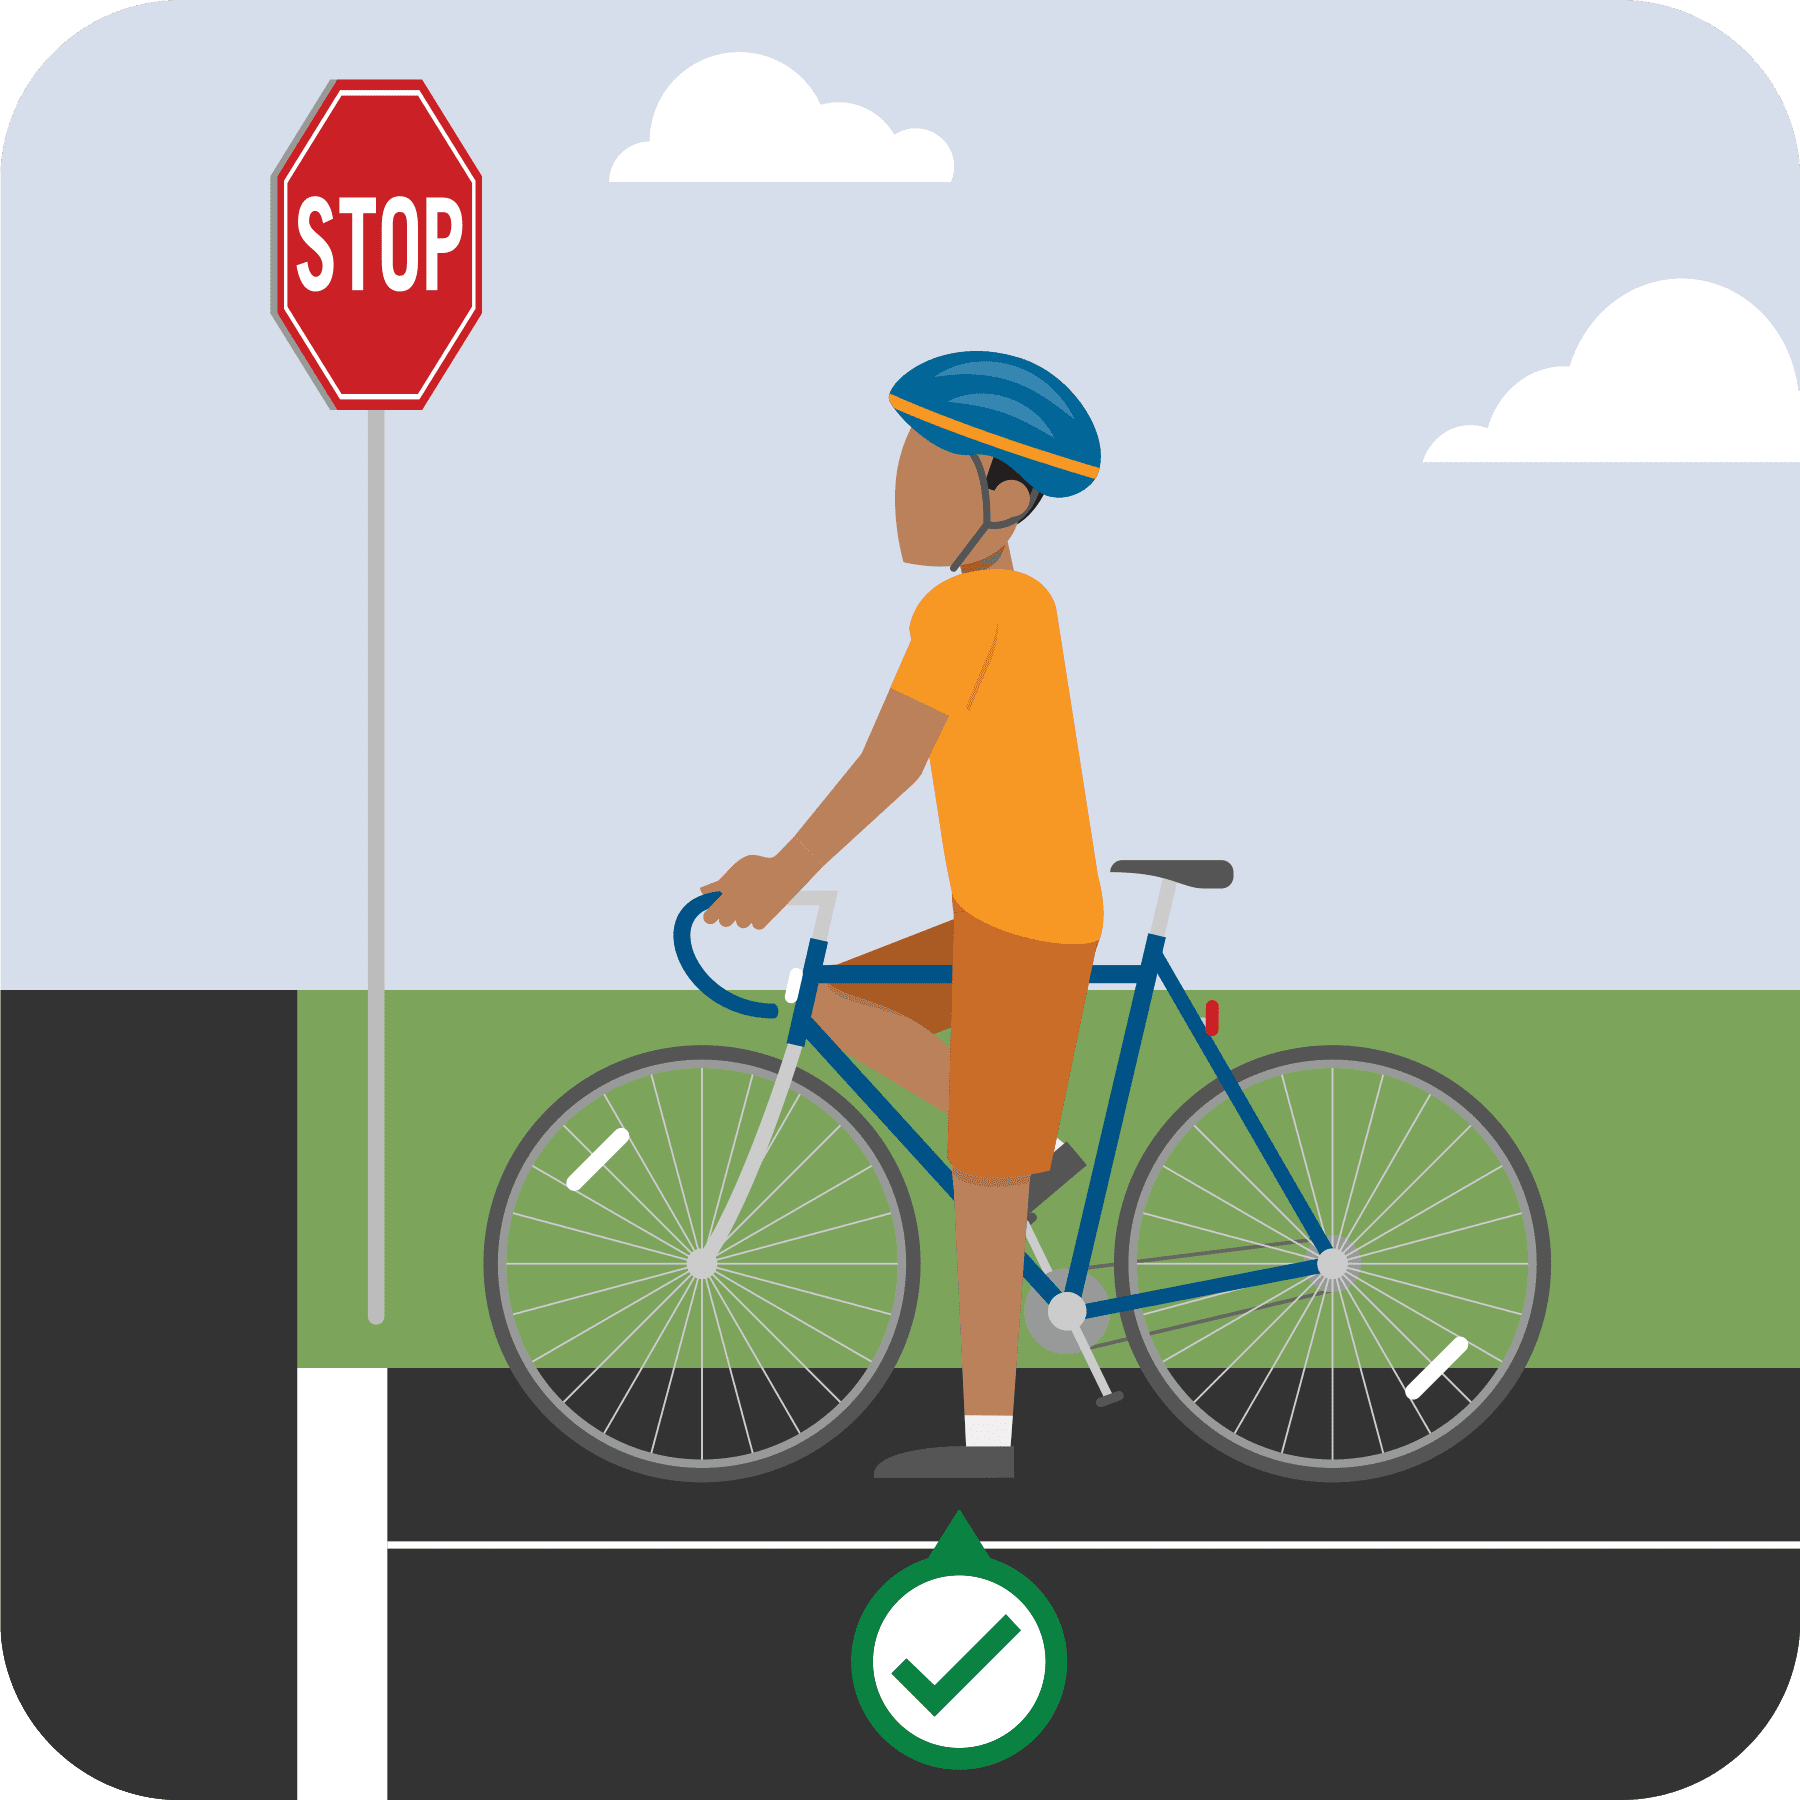 Bicyclist at stop sign.